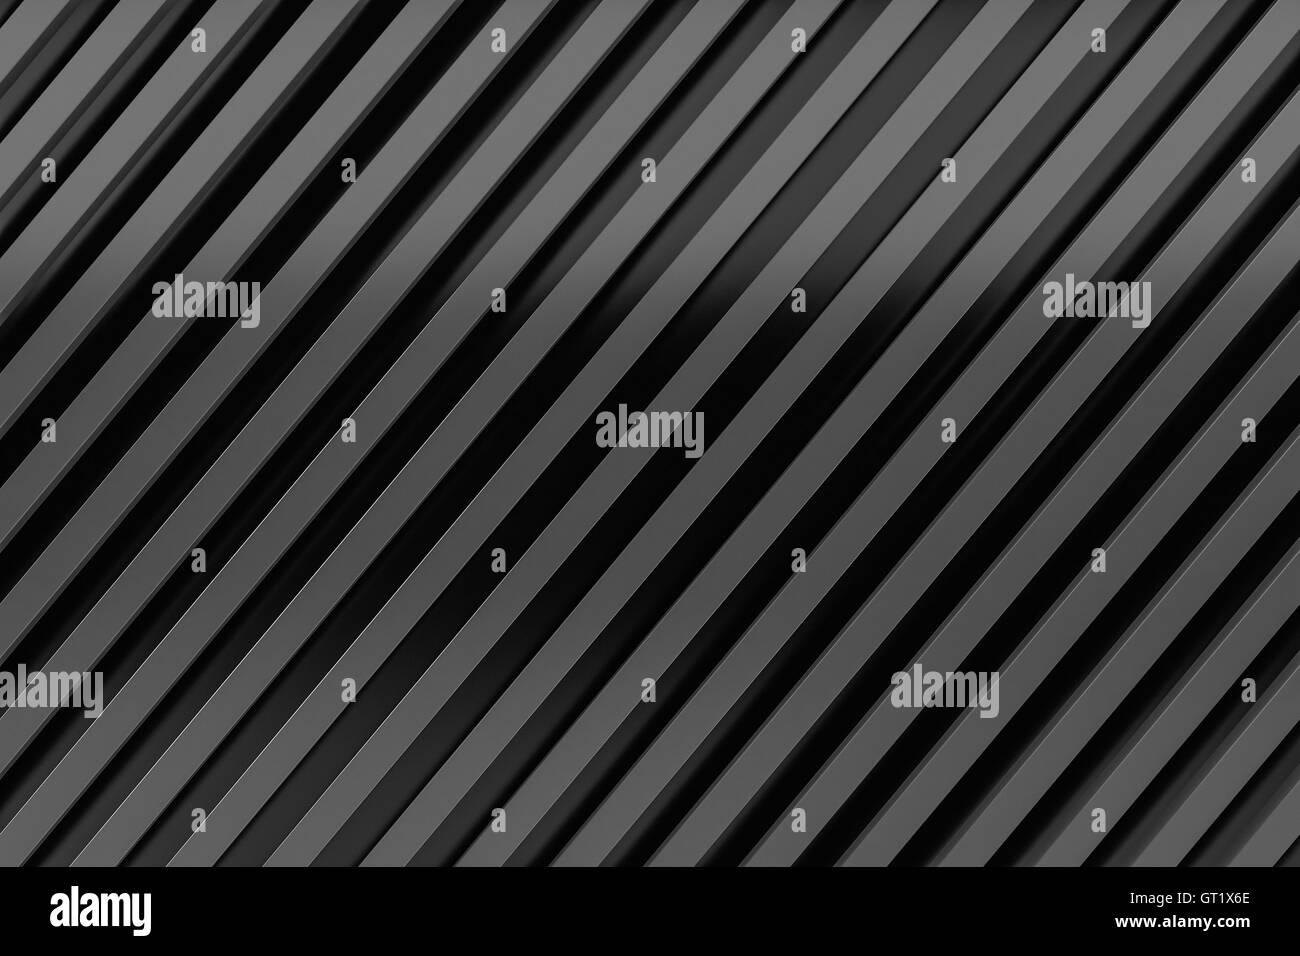 black siding oblique line layout metal material background 3d render - Stock Image